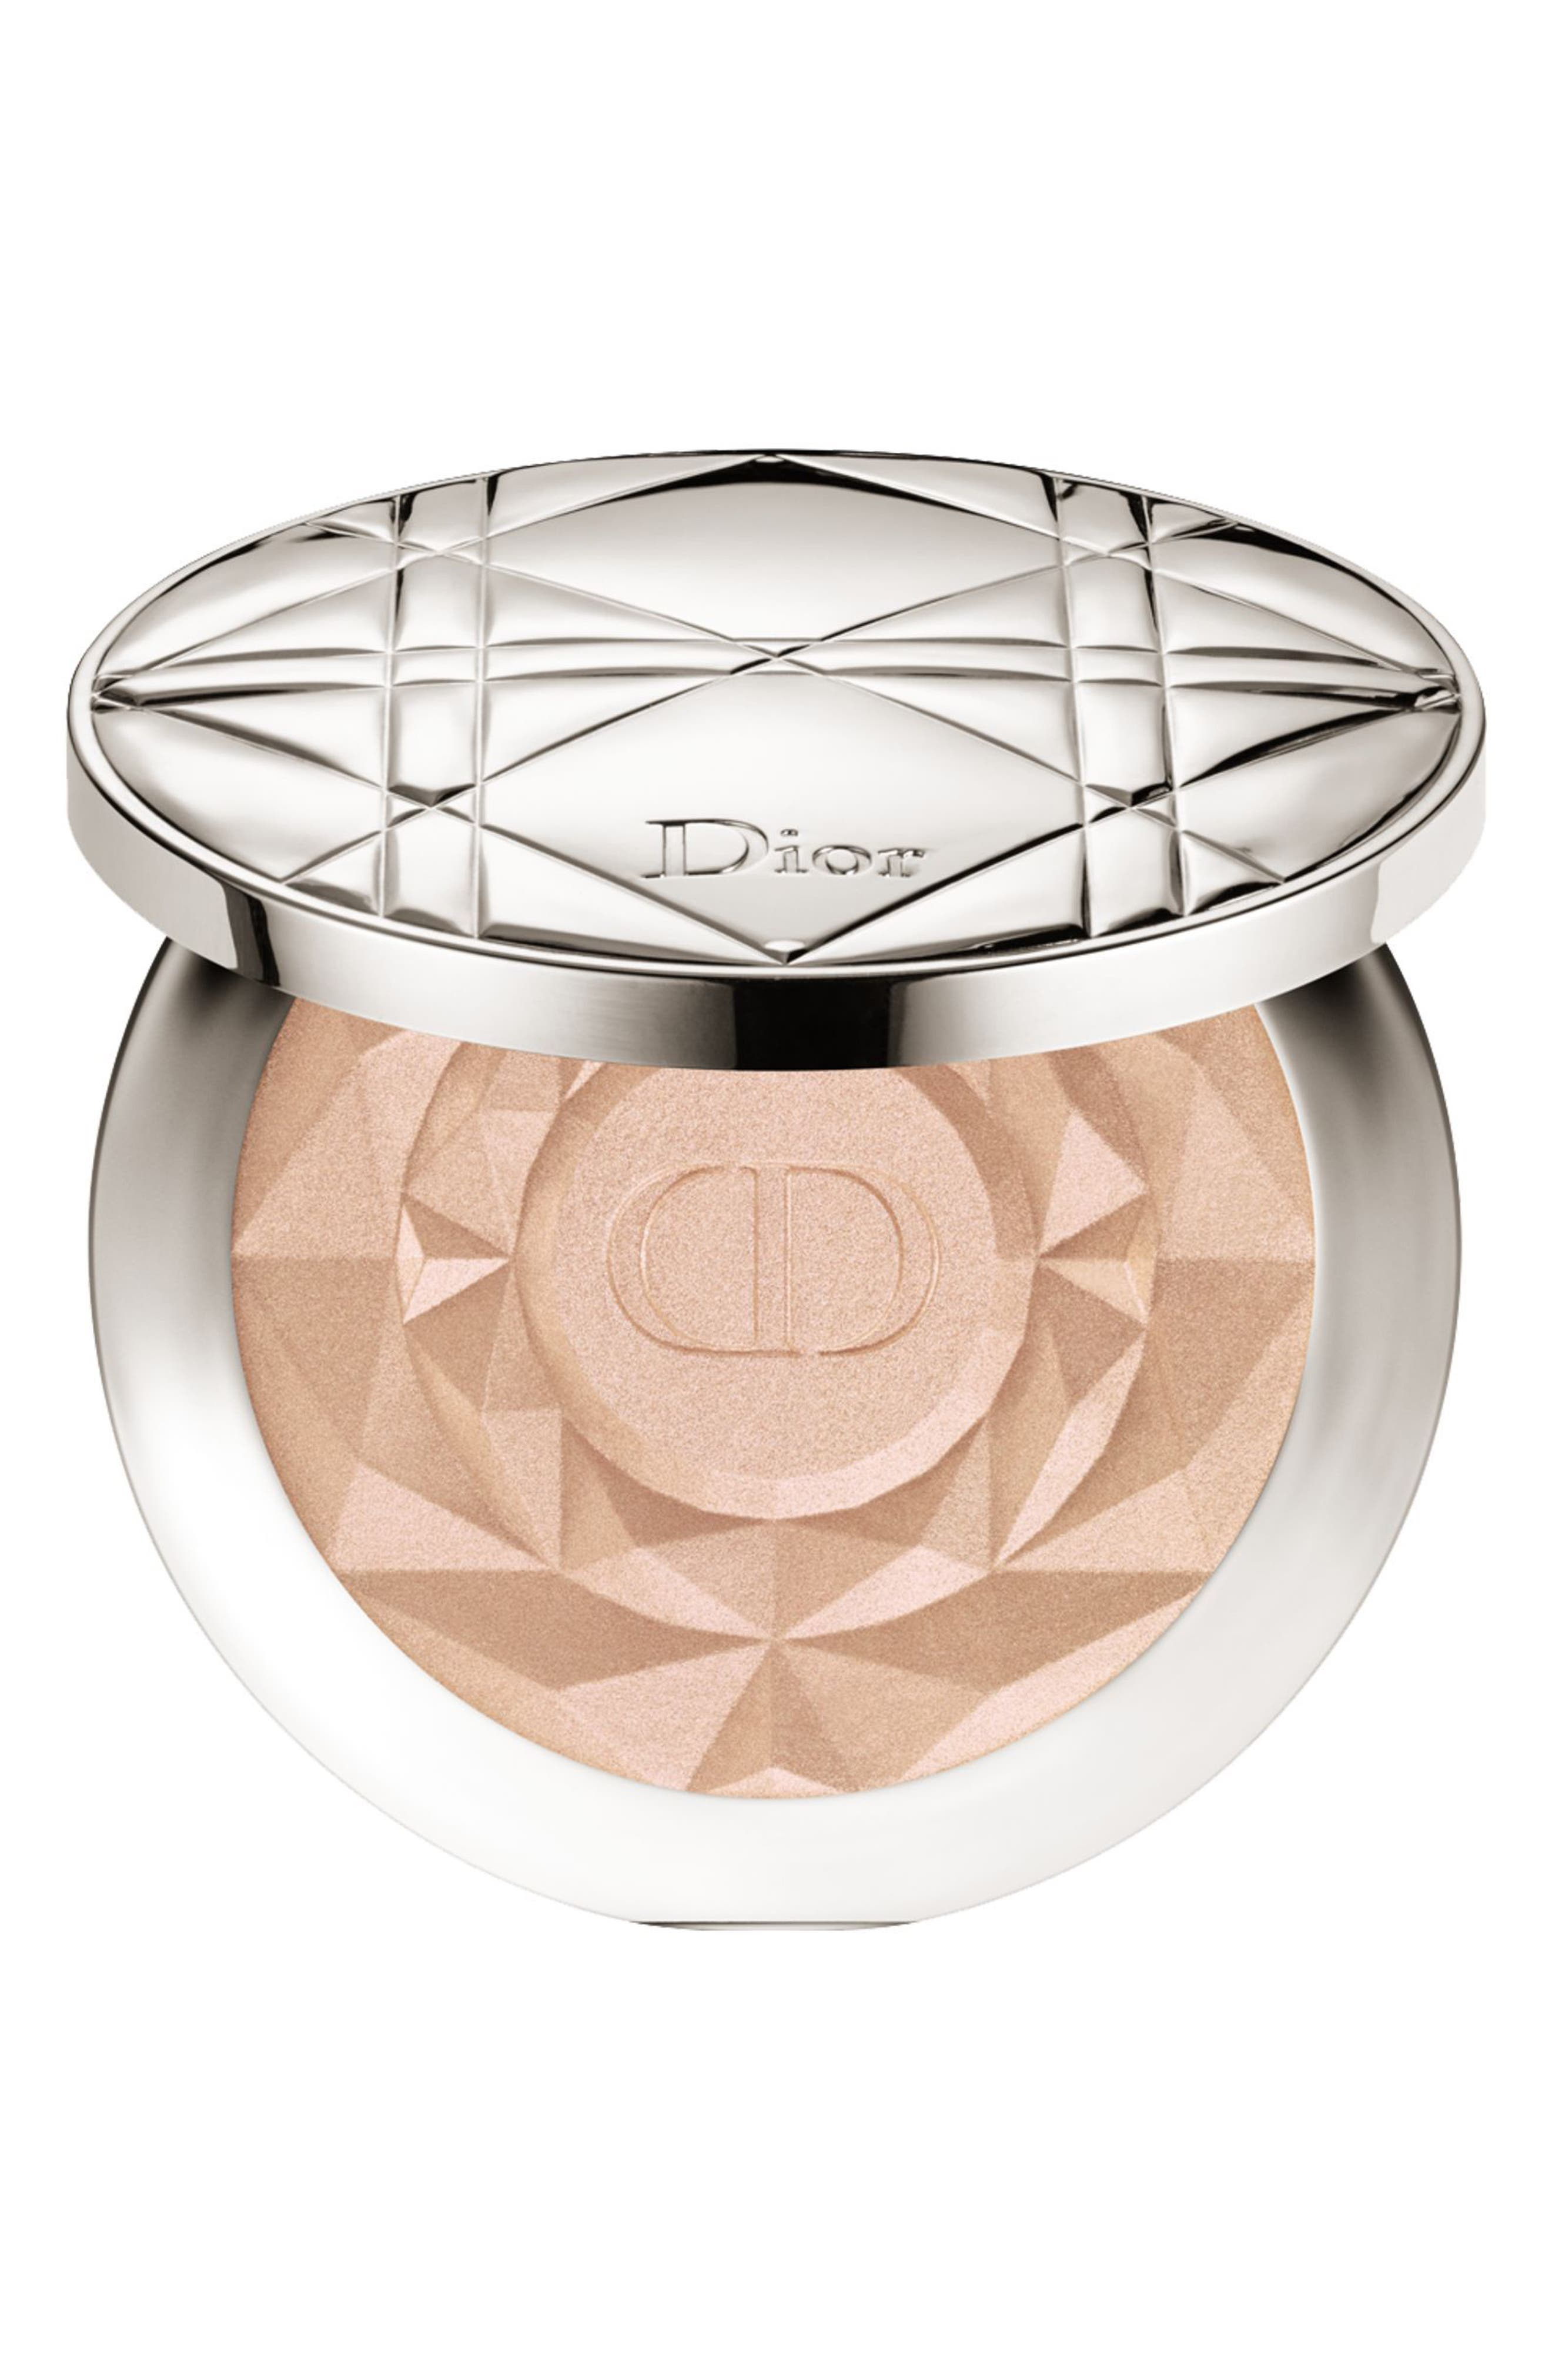 Alternate Image 1 Selected - Dior Diorskin Nude Air Luminizer Precious Rocks Shimmering Sculpting Powder (Limited Edition)